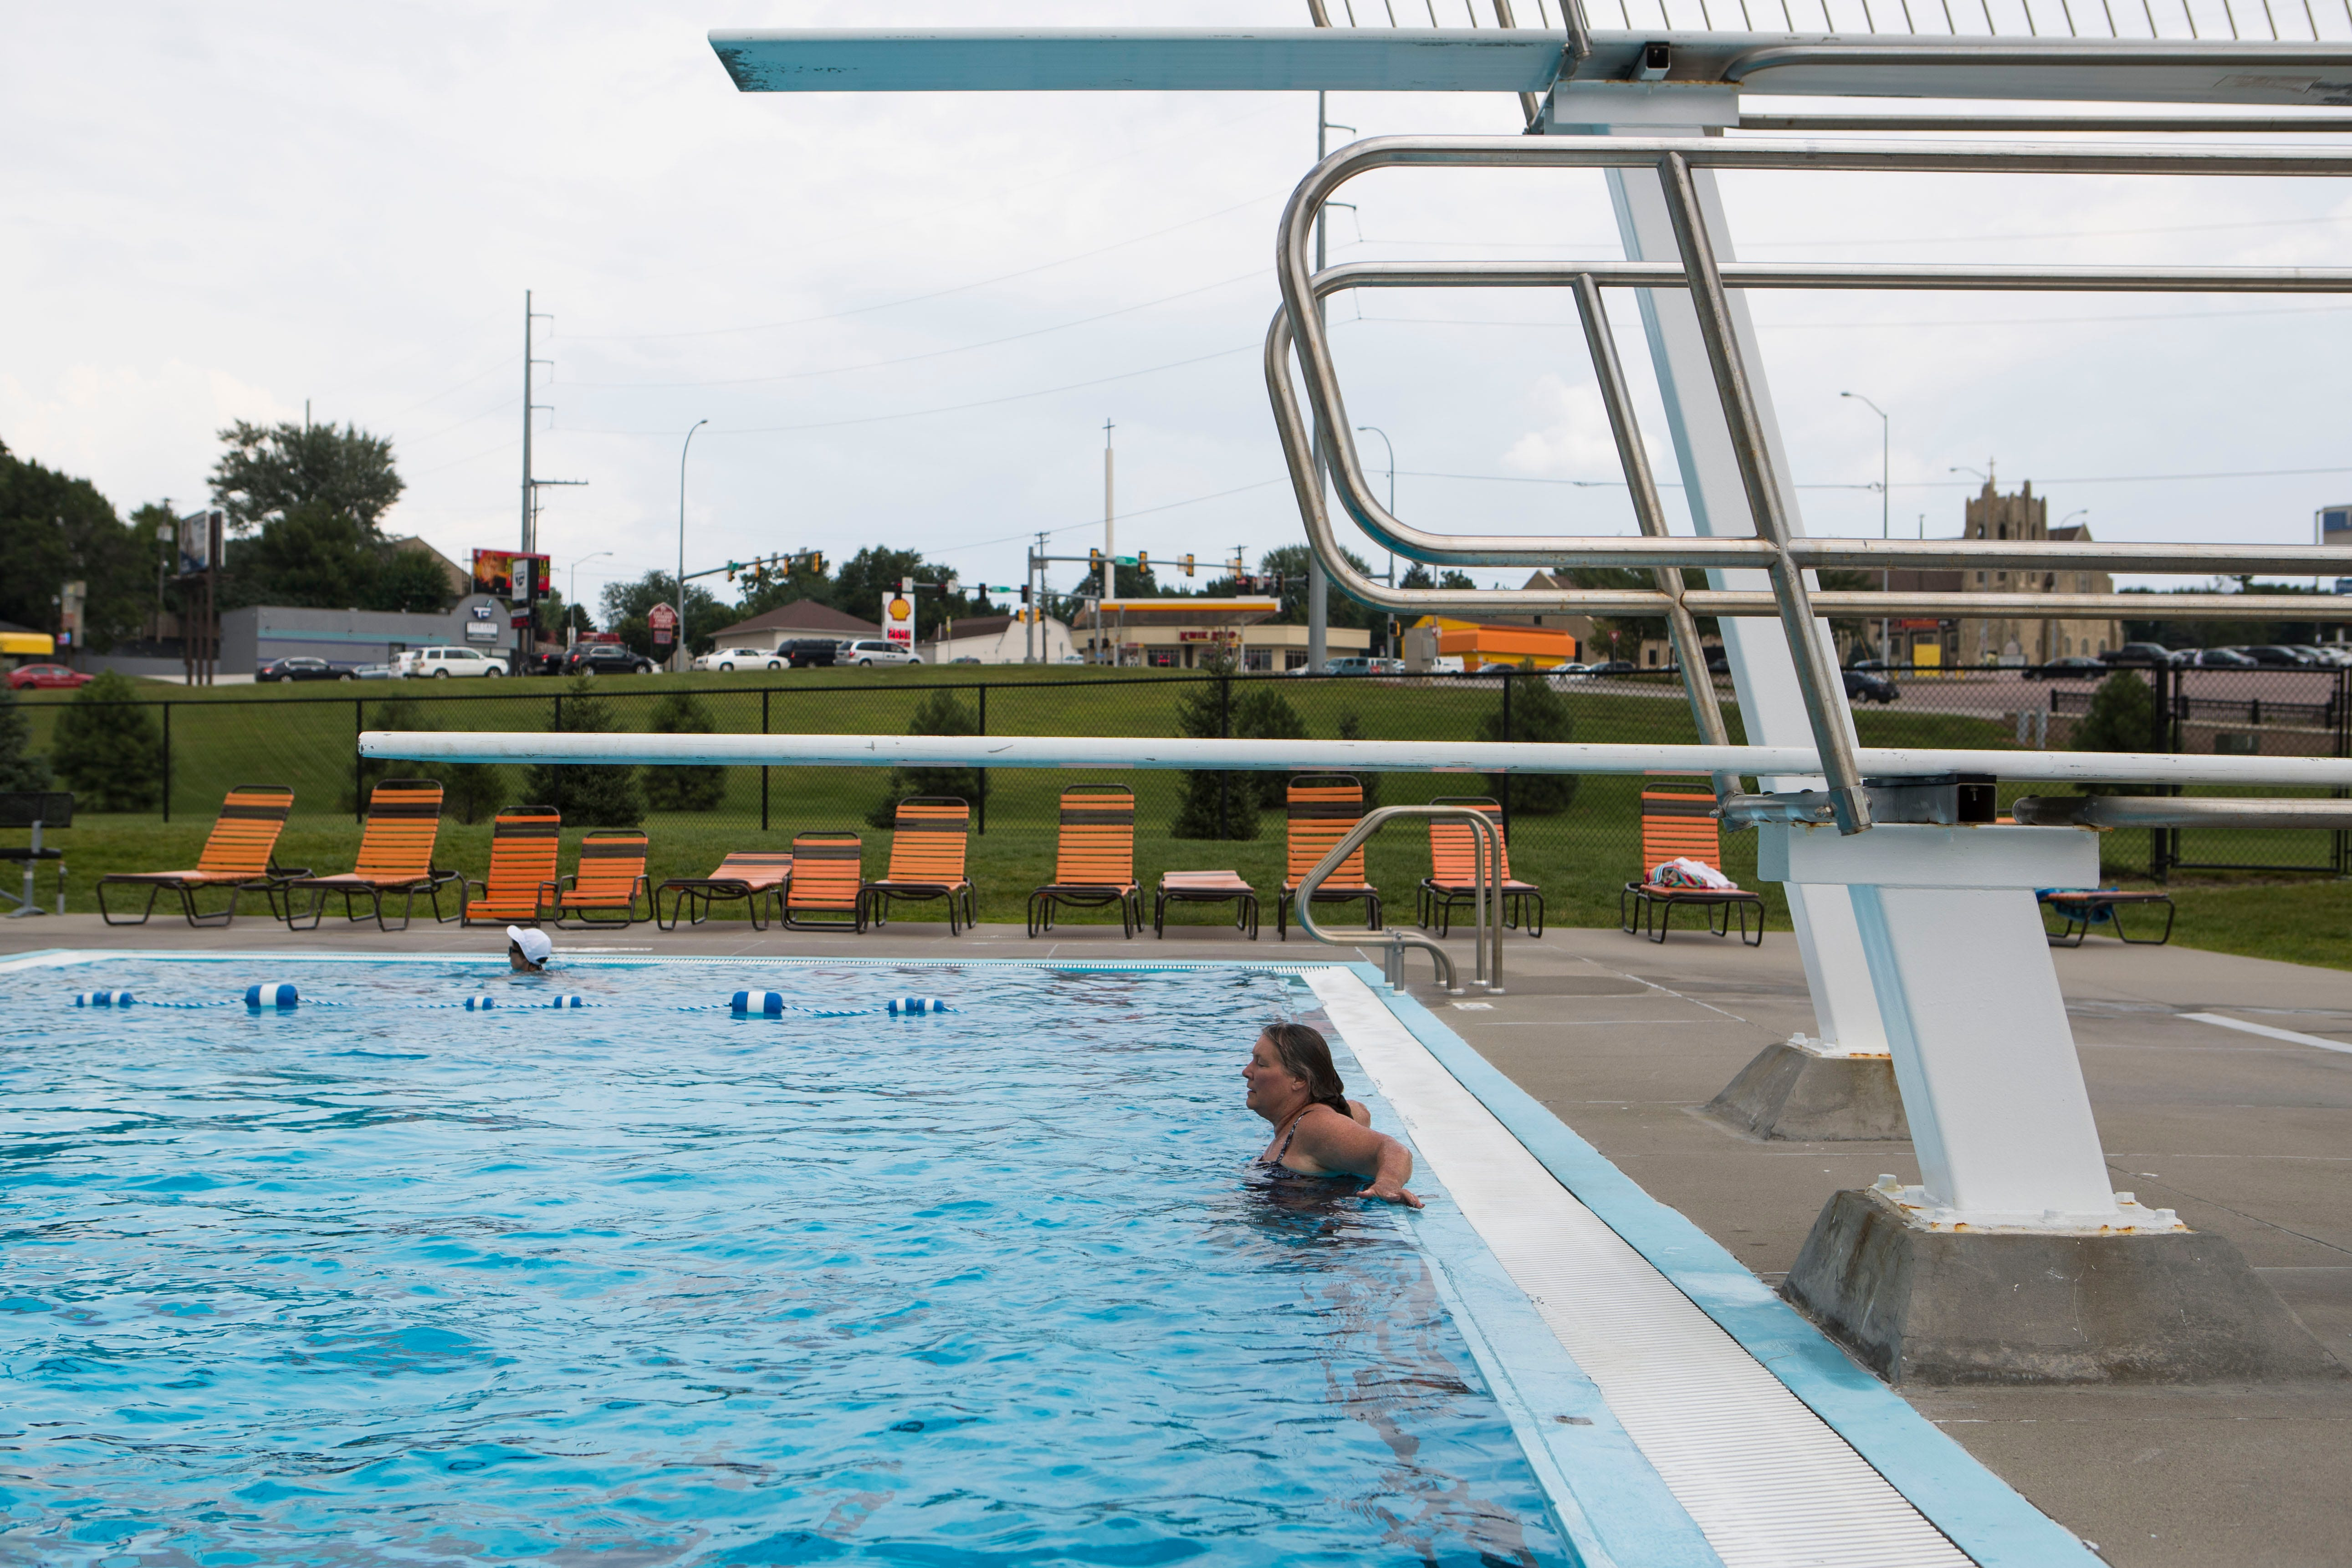 Why are Sioux Falls pools closing early this year? | Argus Leader